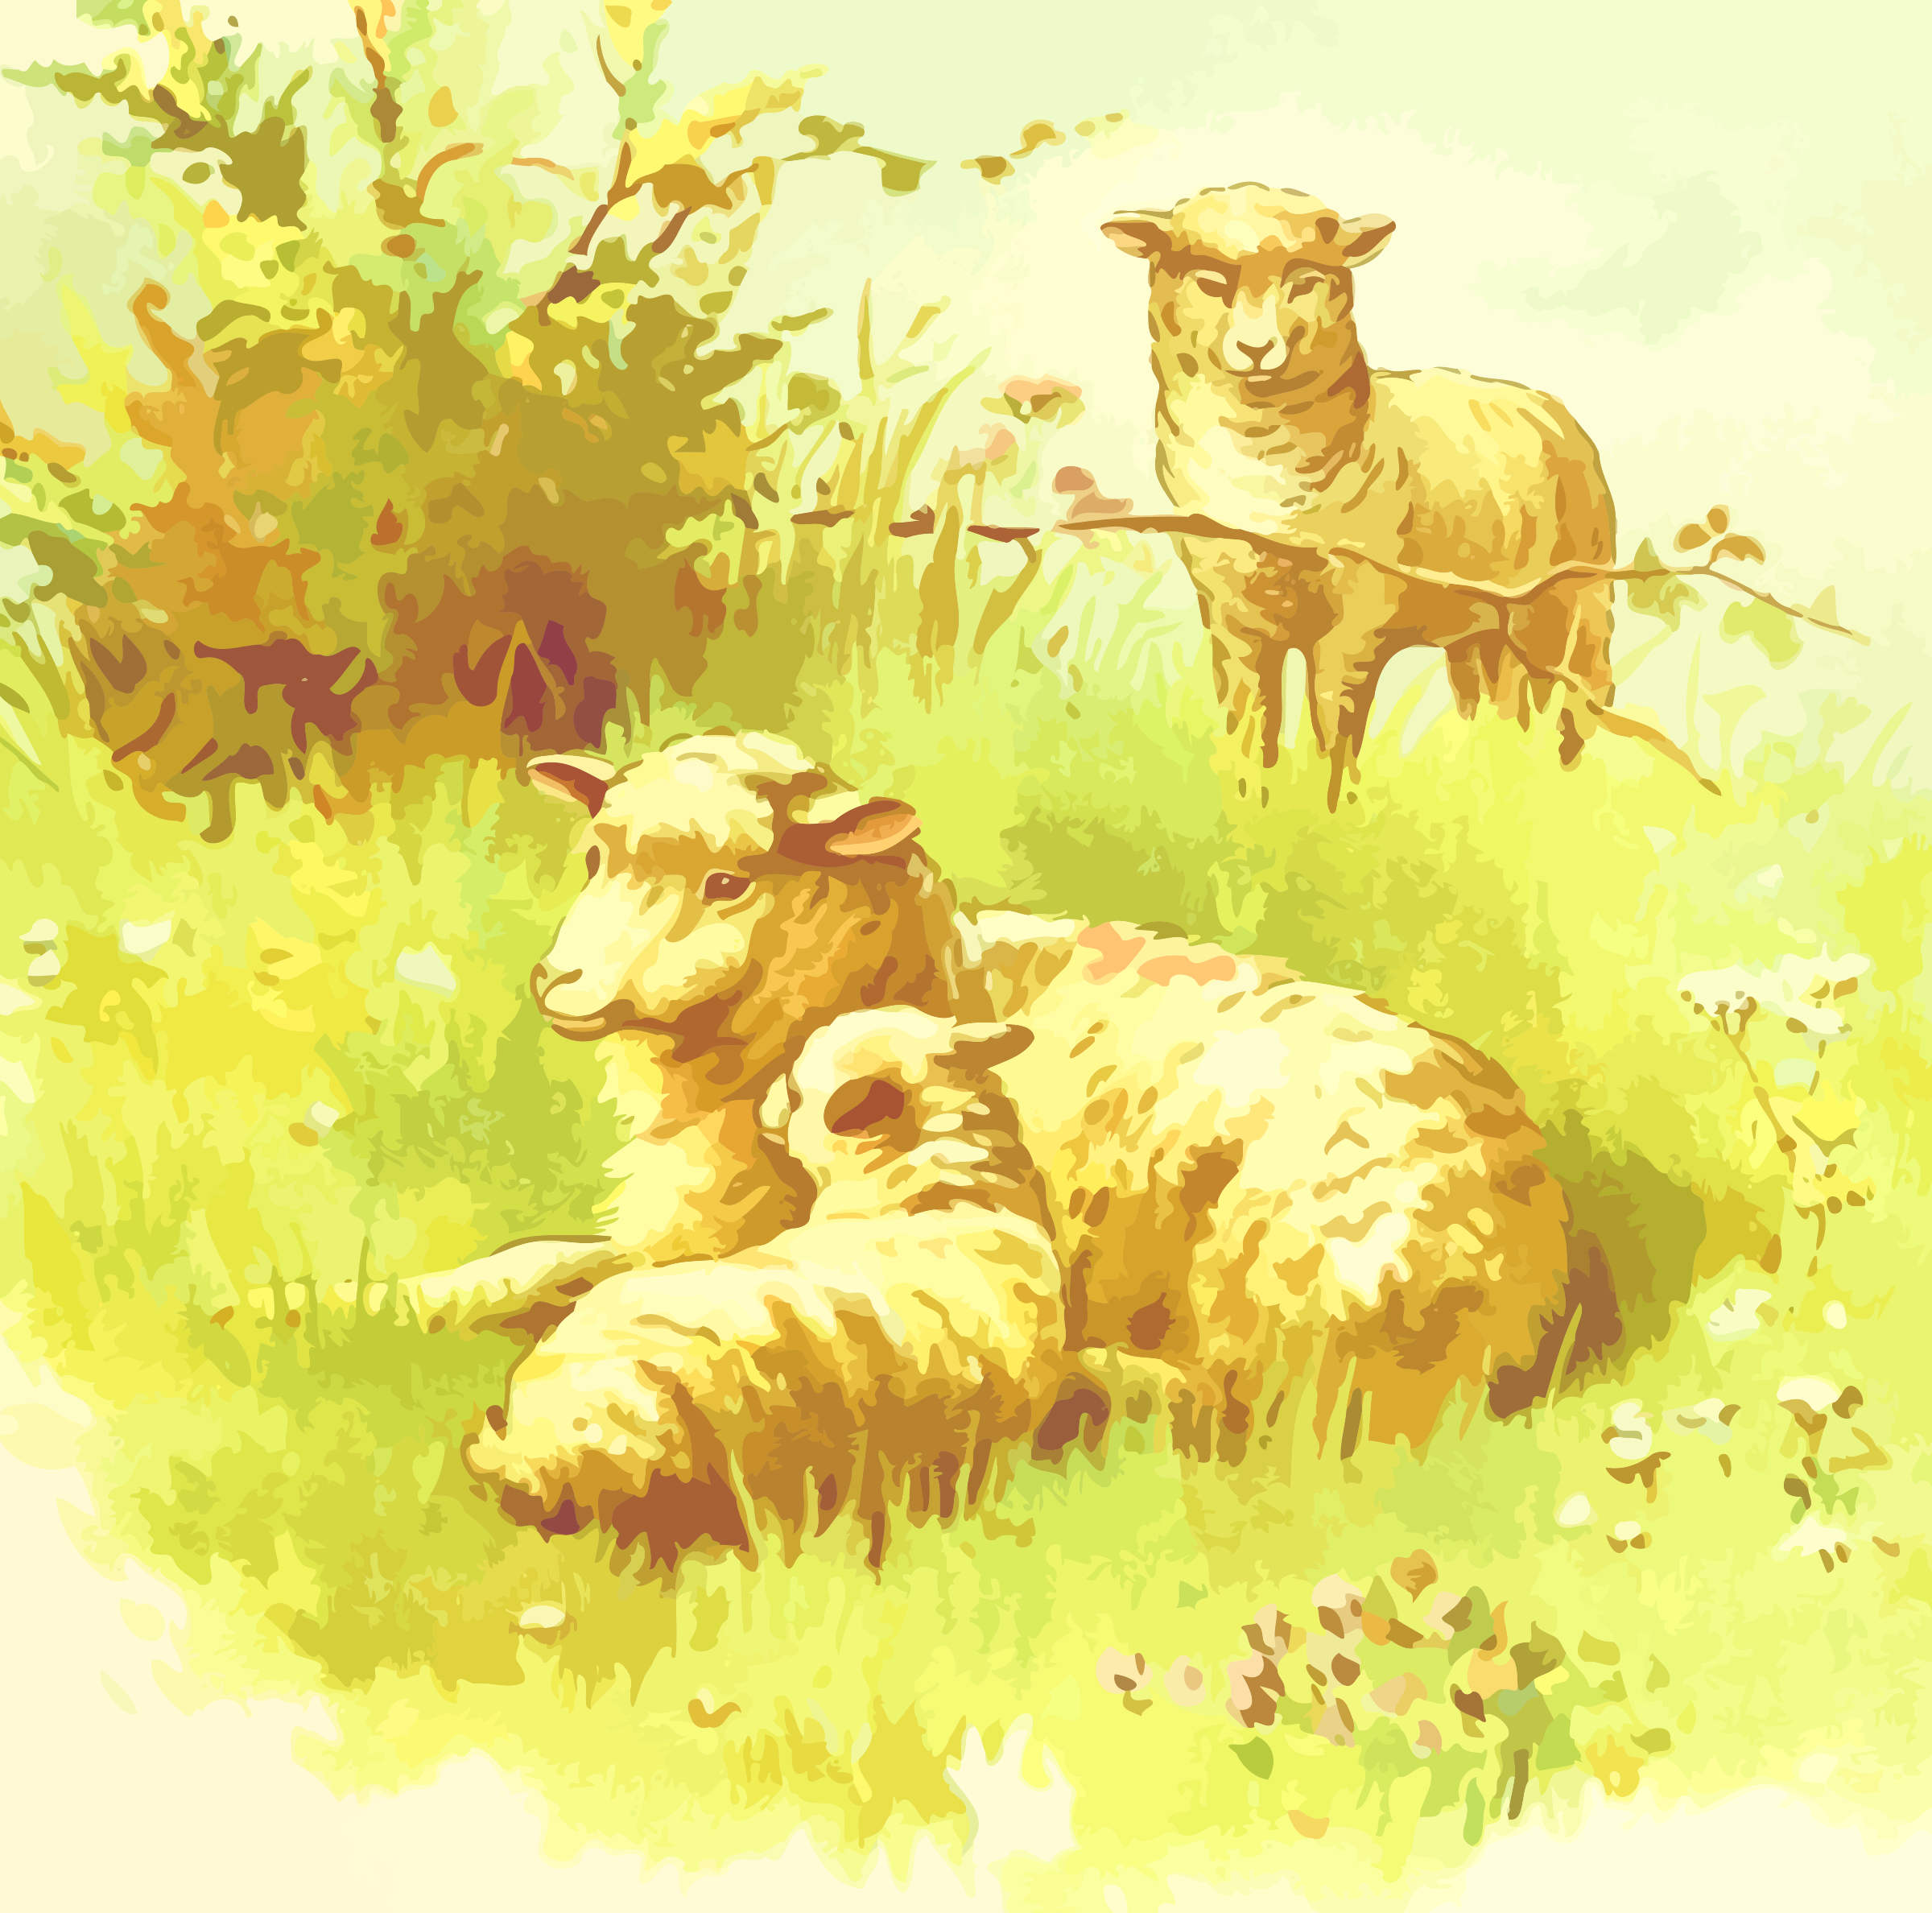 Sheep 2 by Firkin